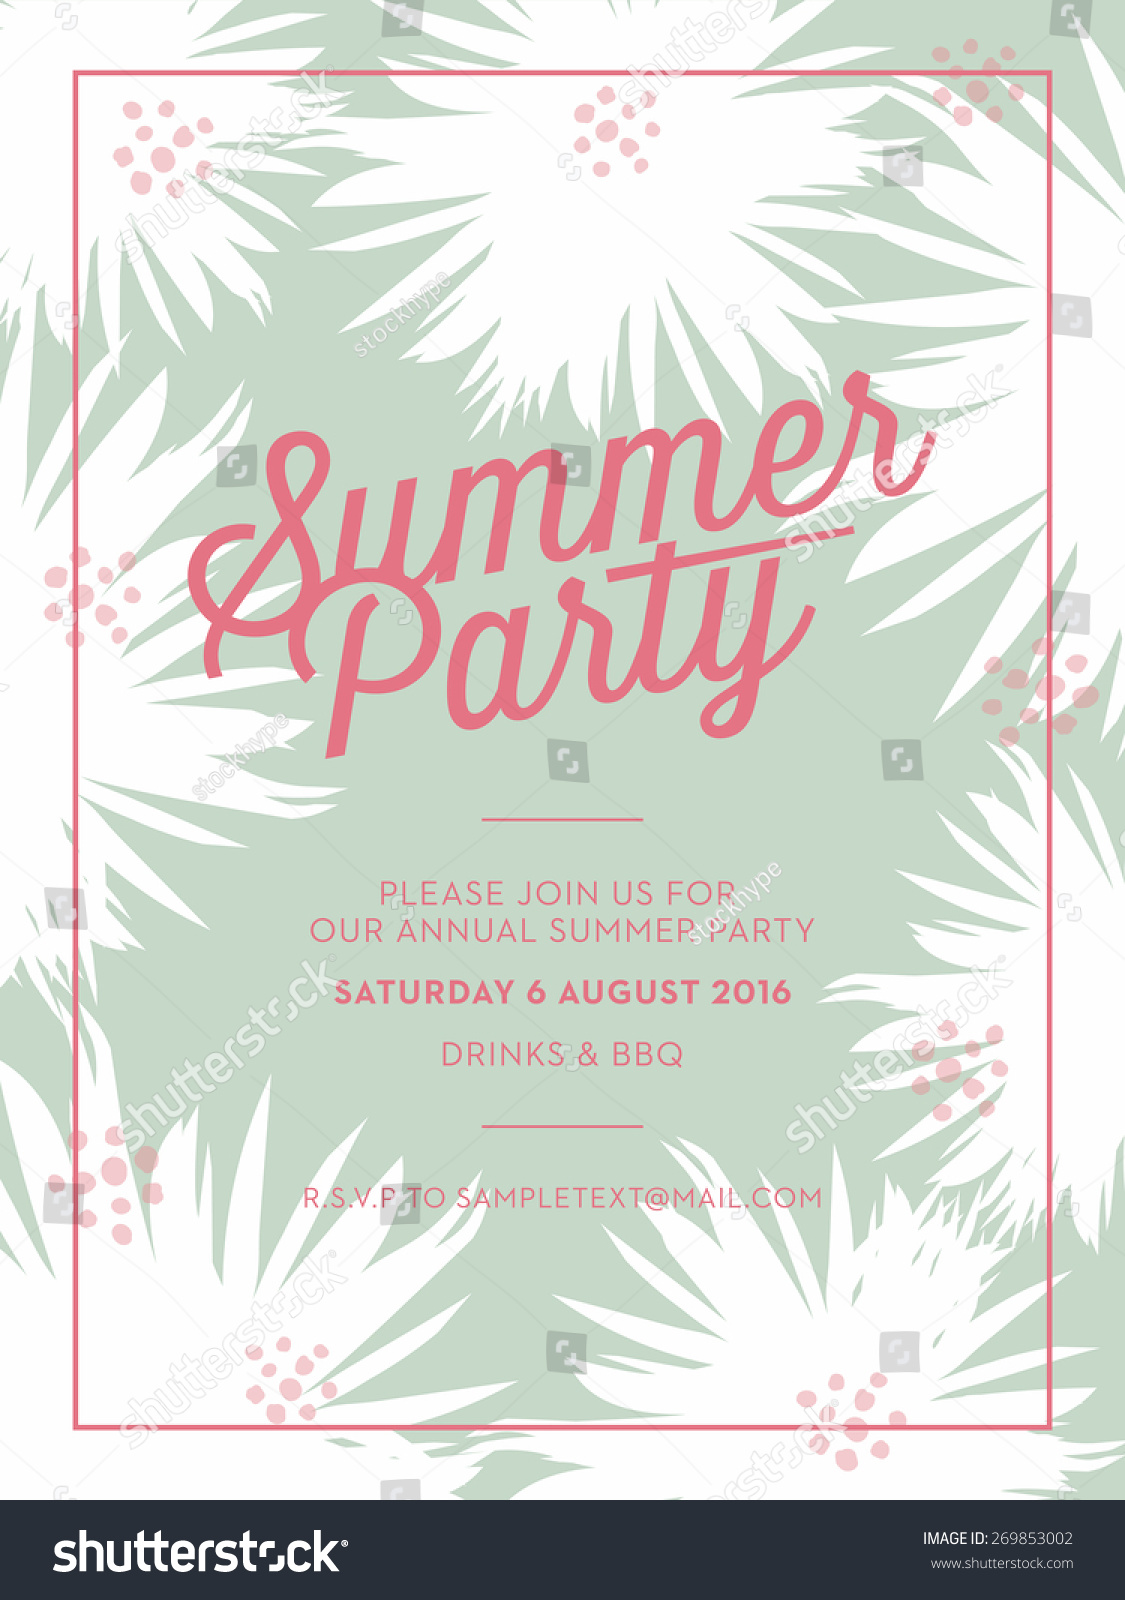 Summer Party Invitation Card Leaves Elements Stock Vector ...